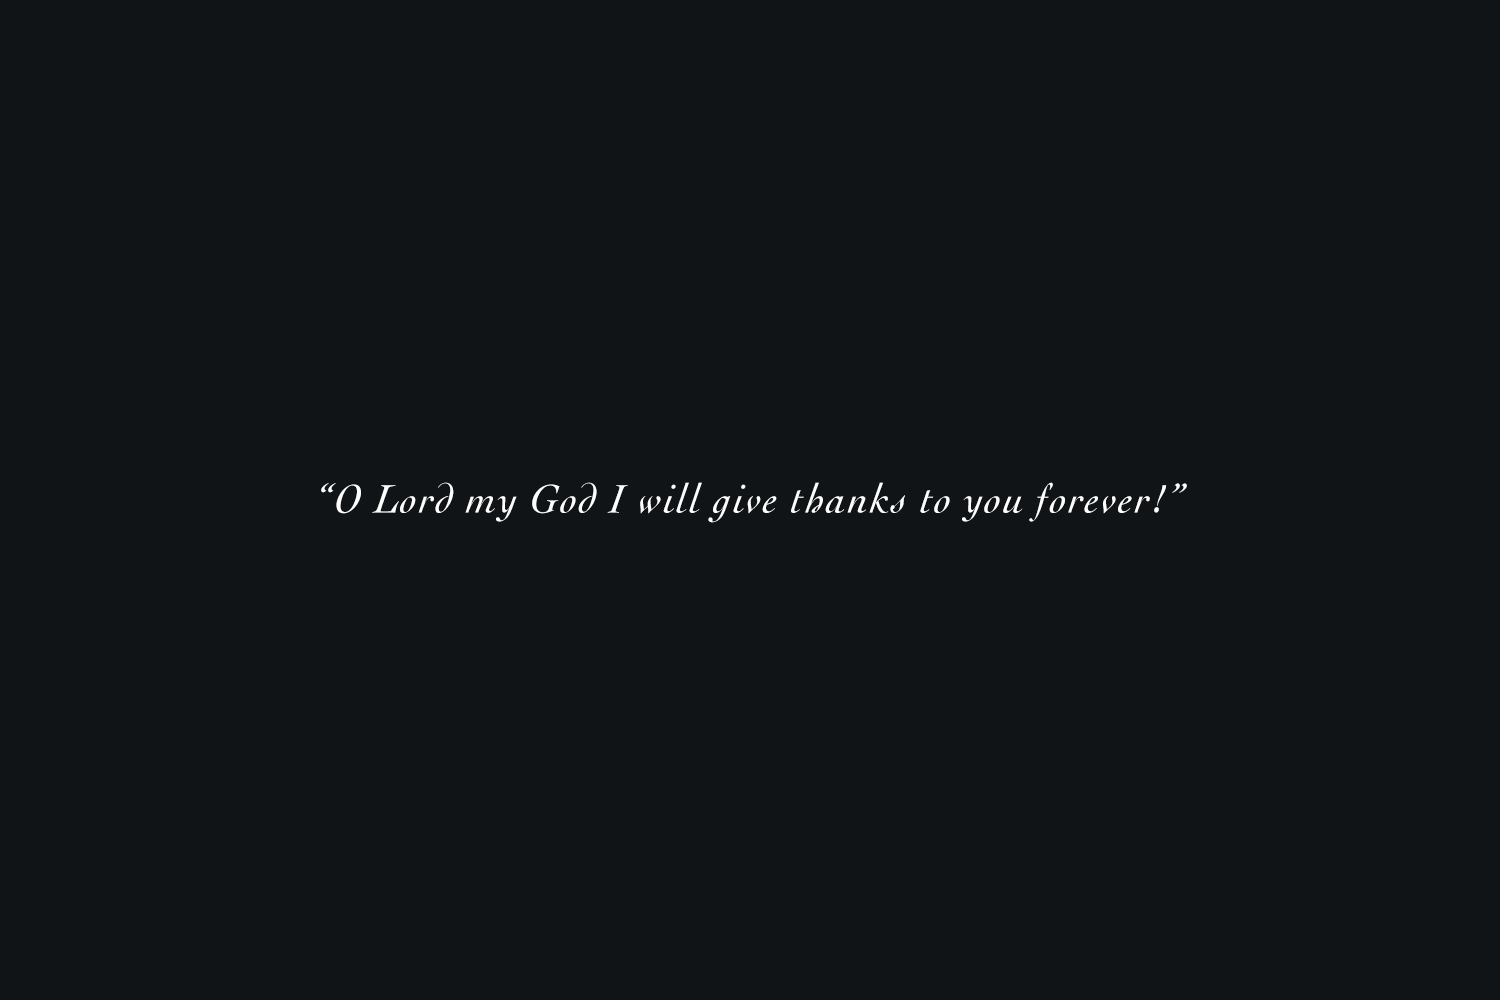 oh lord my god i will give thanks to you forever